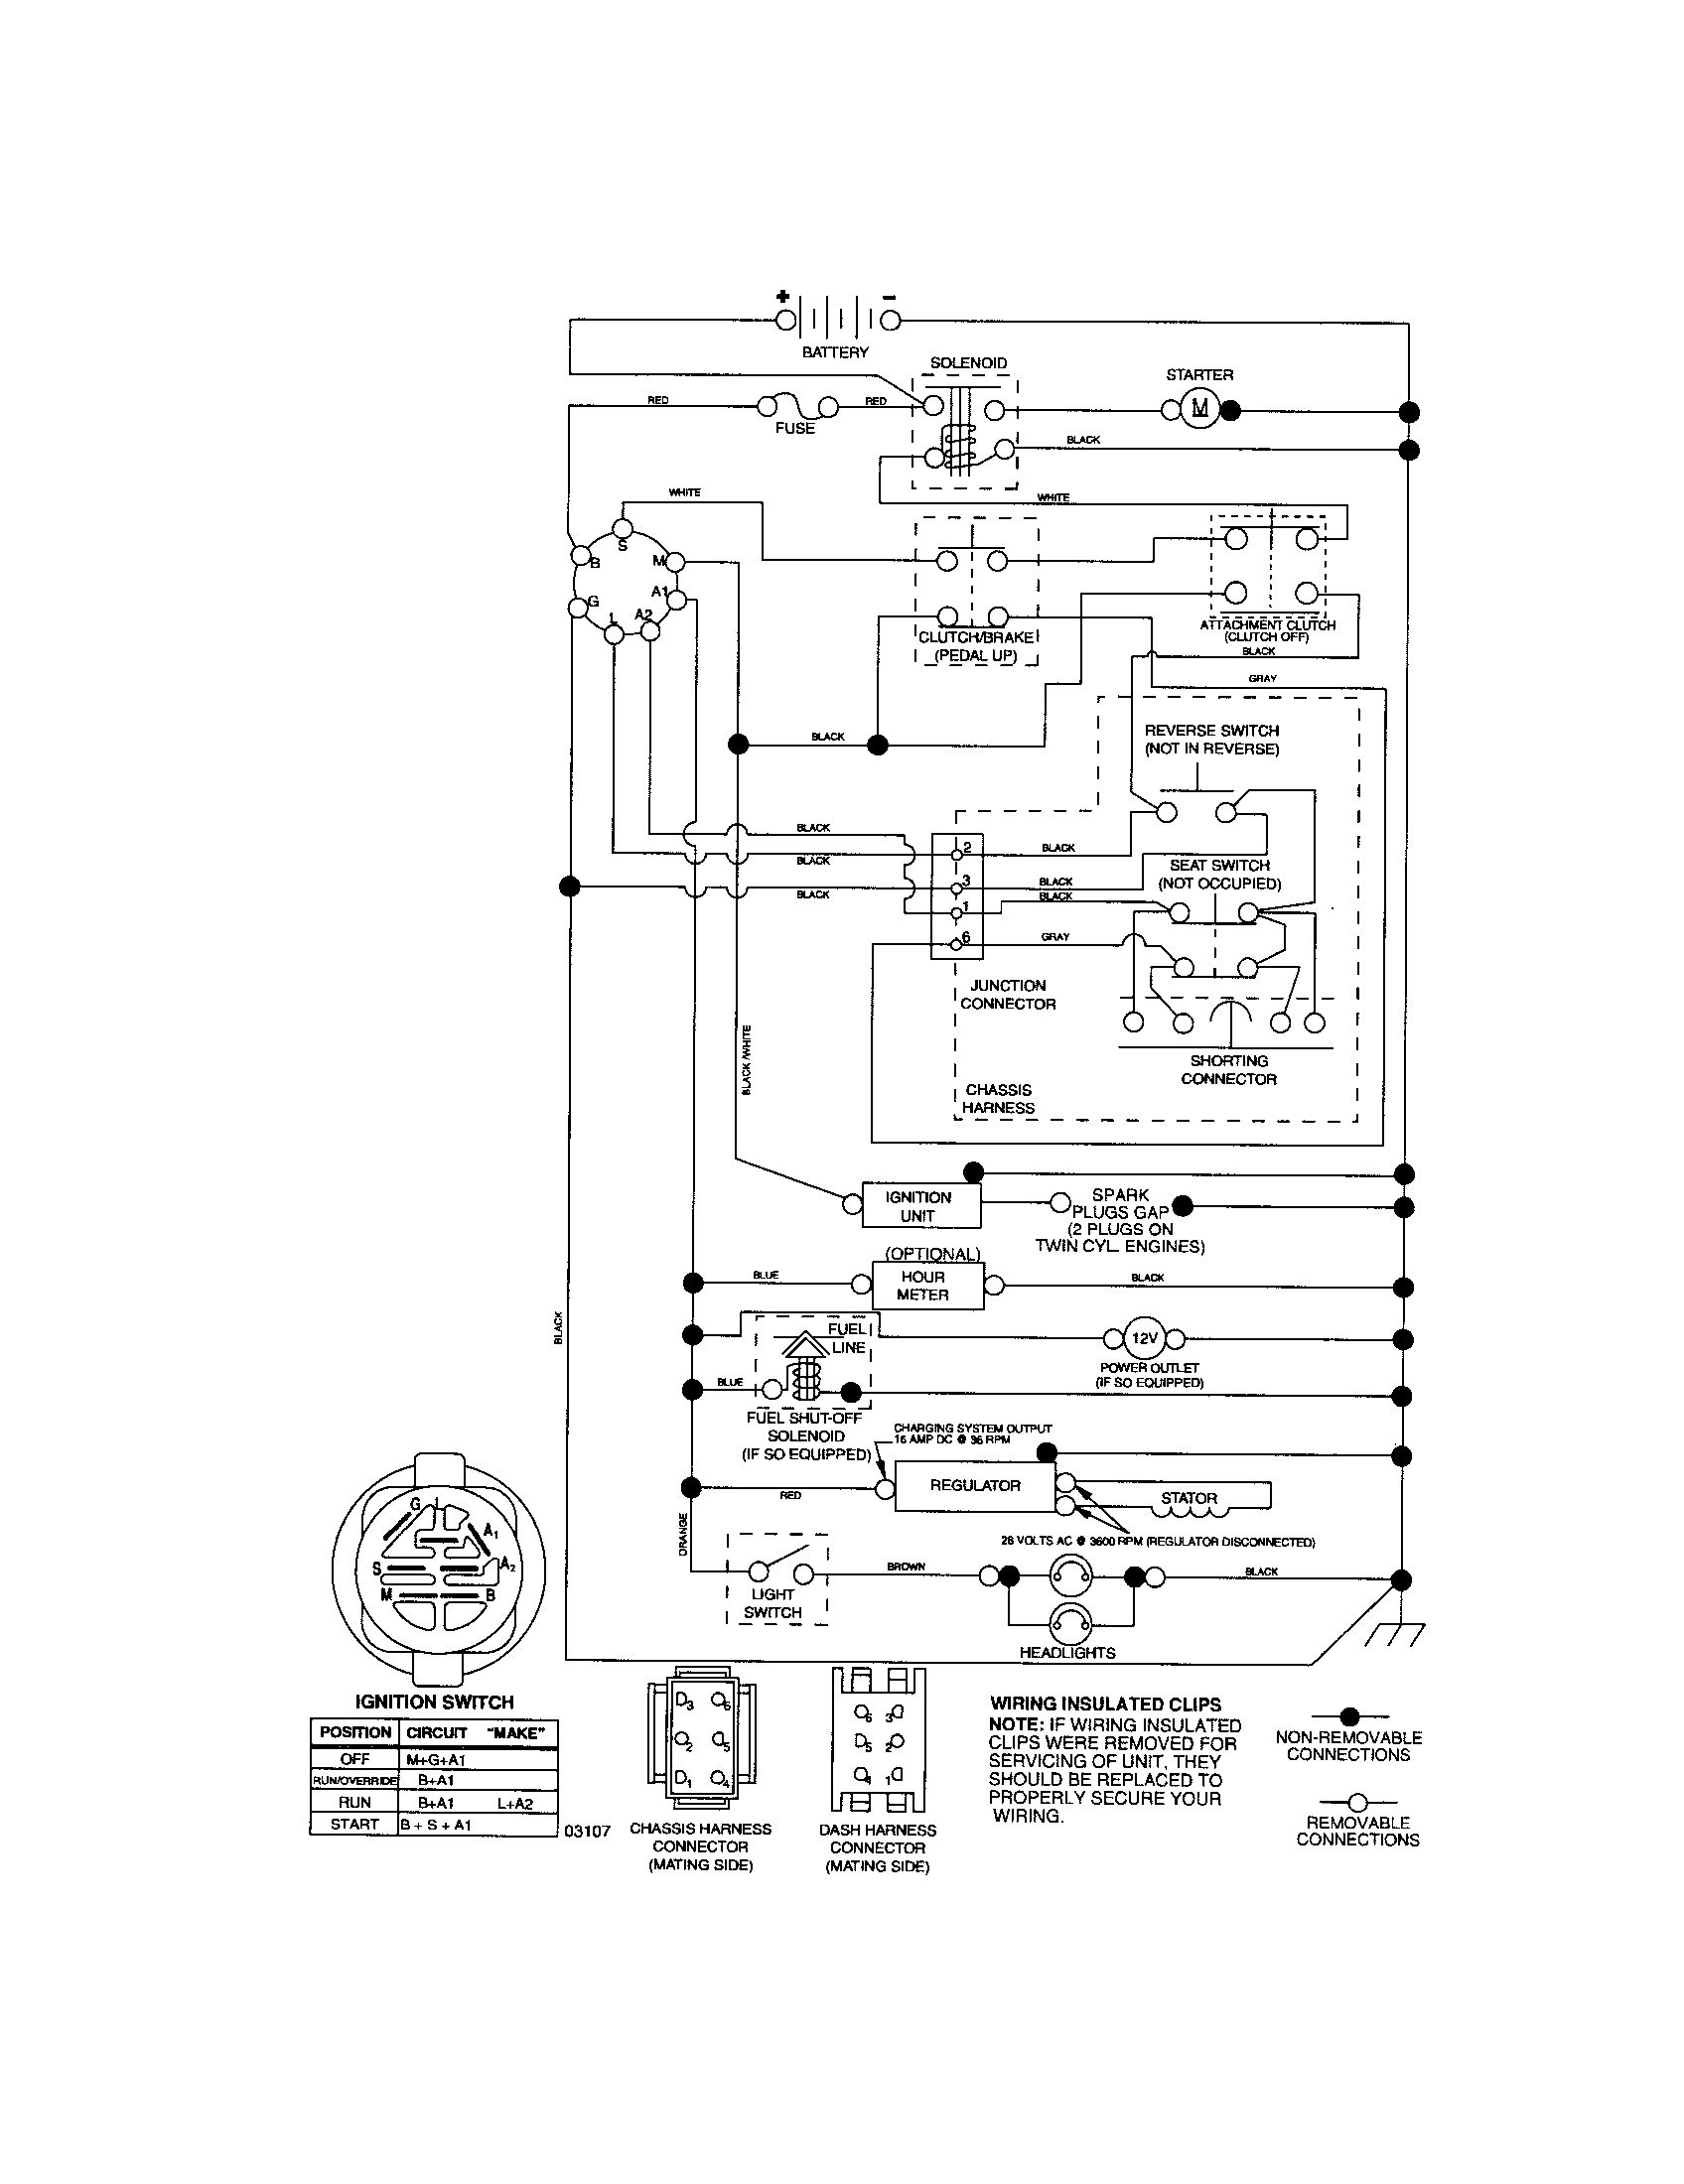 john deere lawn mower key wiring diagram